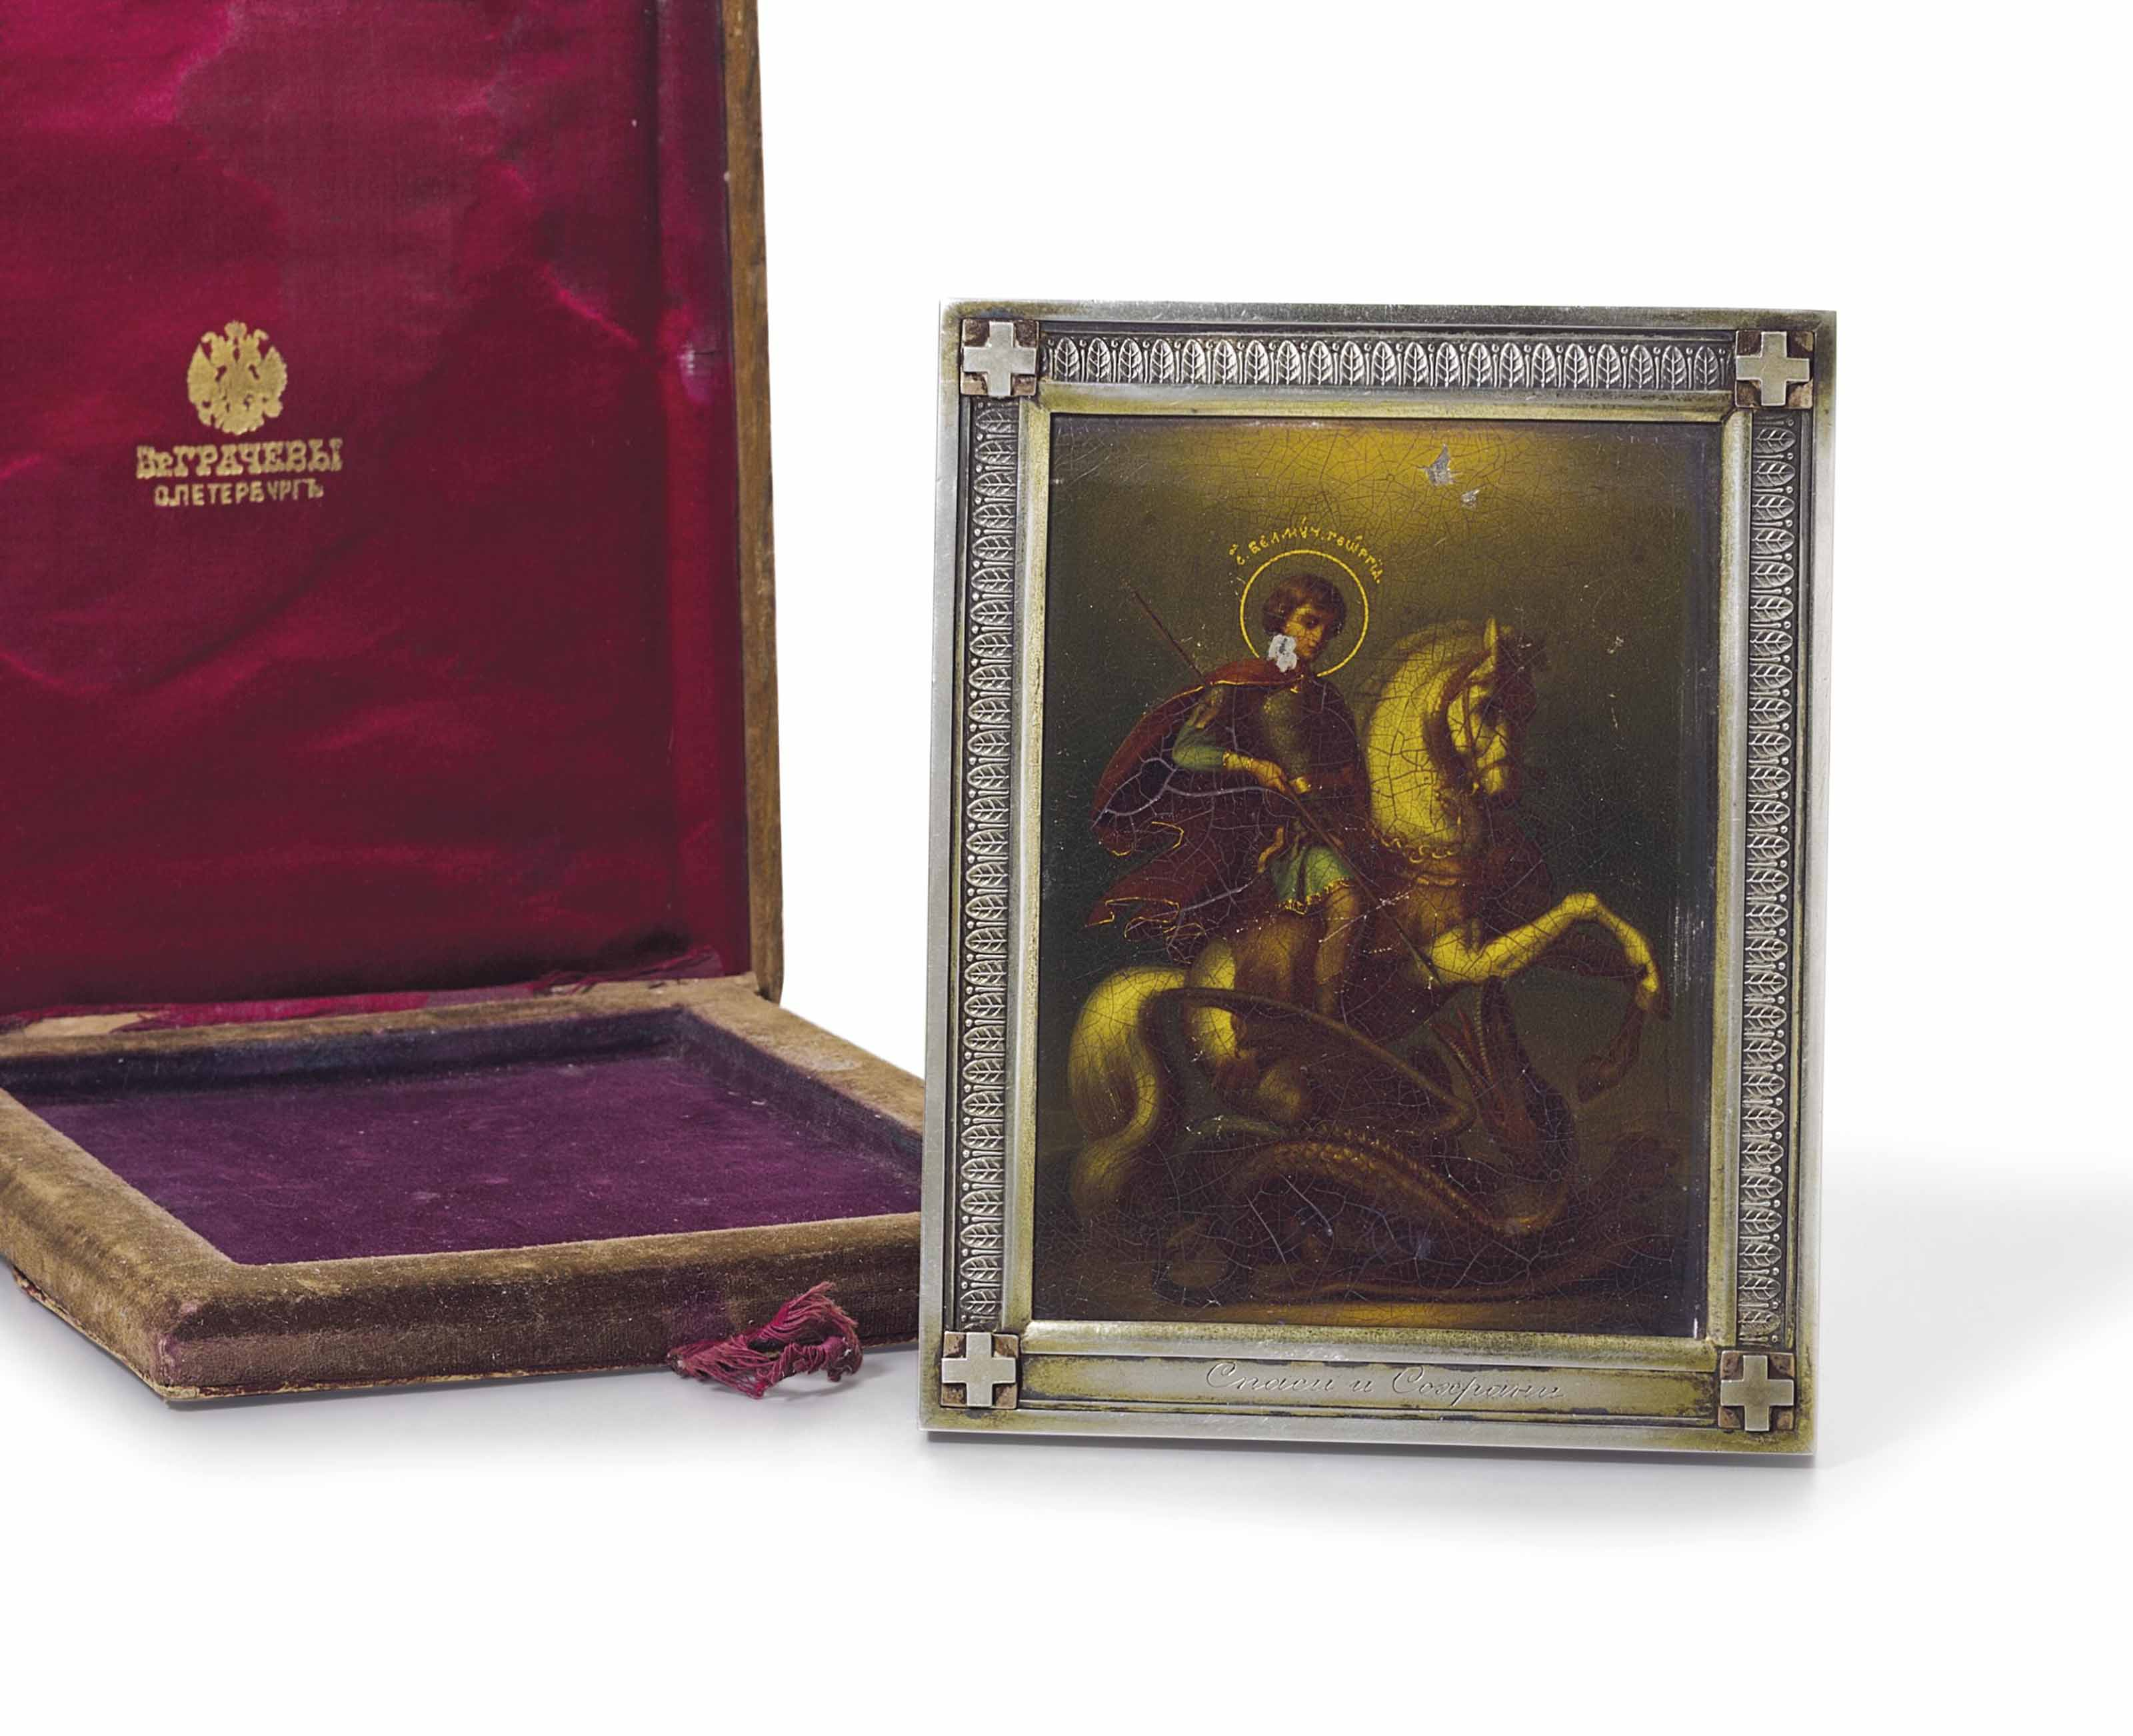 A SILVER-GILT ICON OF ST. GEORGE